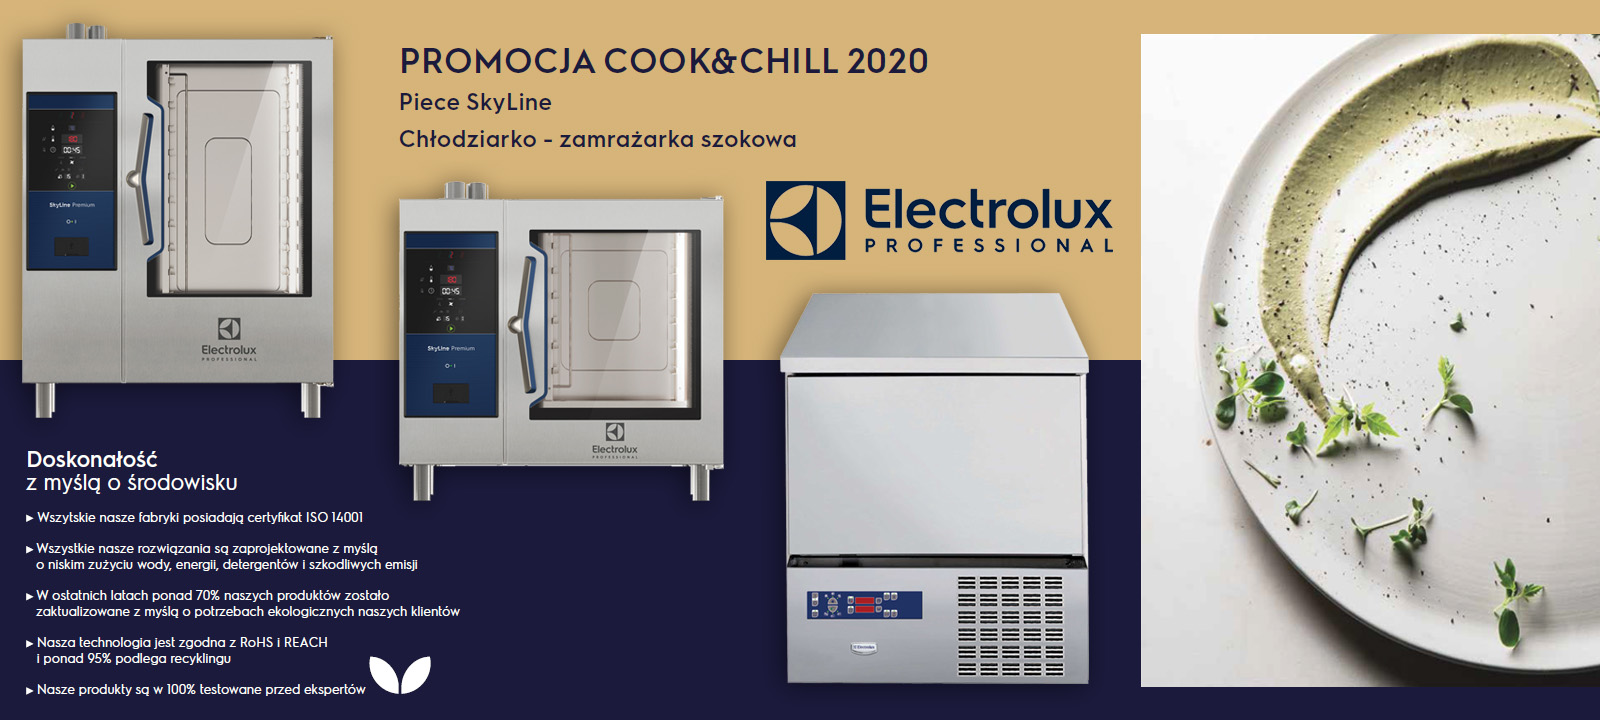 PROMOCJA COOK&CHILL 2020